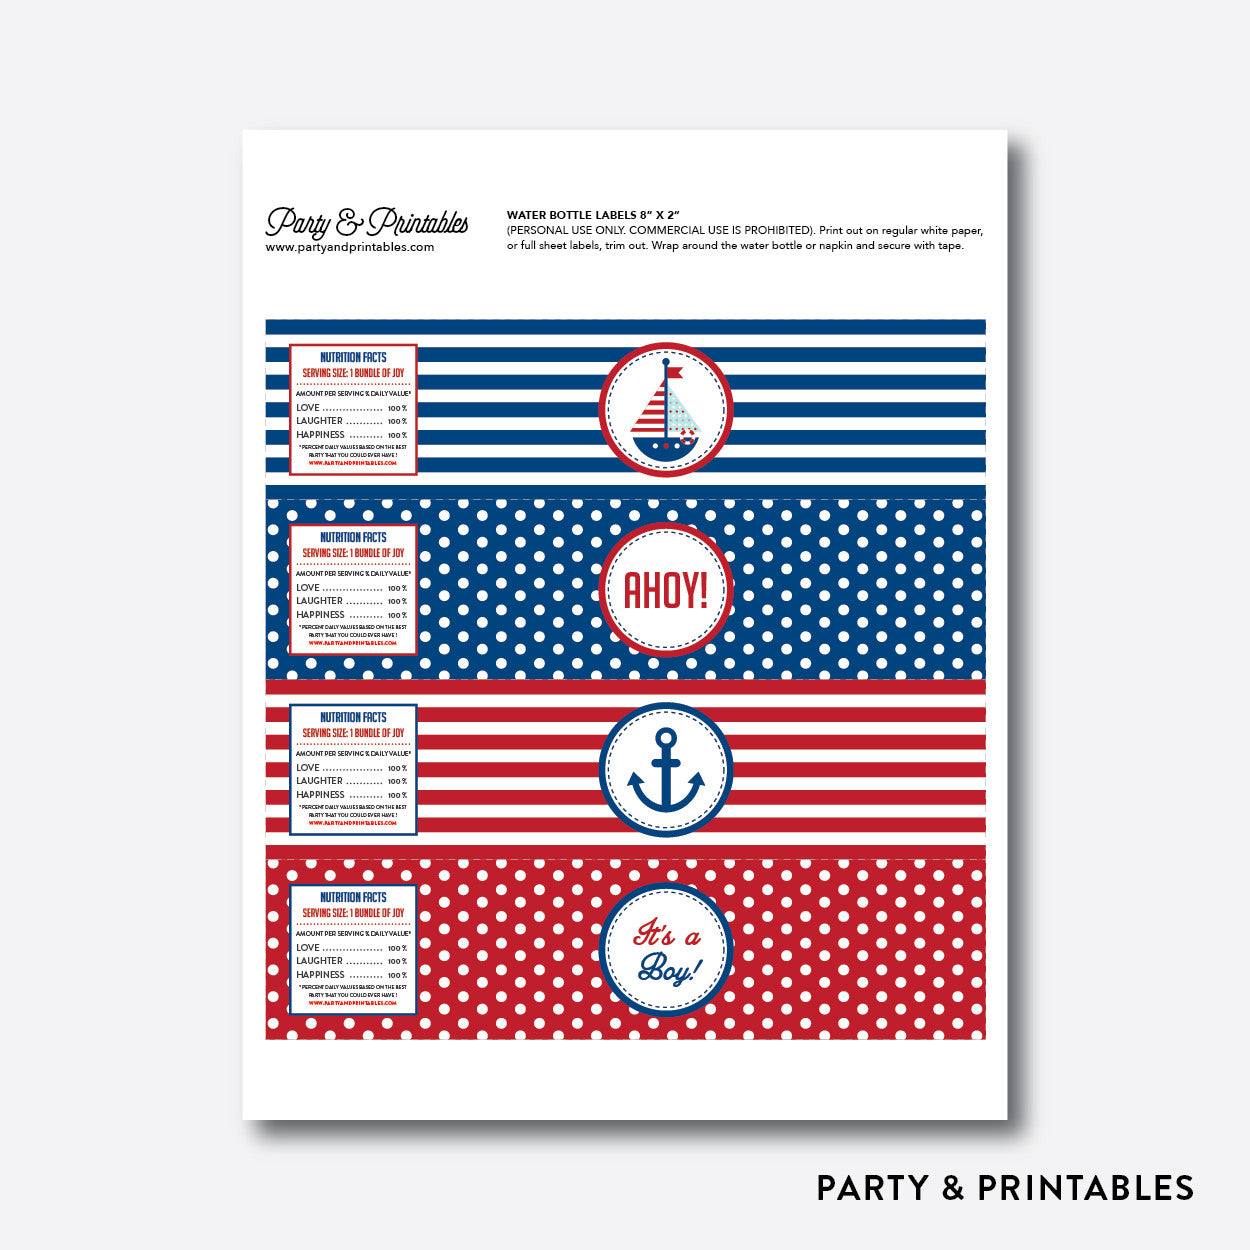 Nautical Water Bottle Labels / Non-Personalized / Instant Download (SBS.01), party printables - Party and Printables